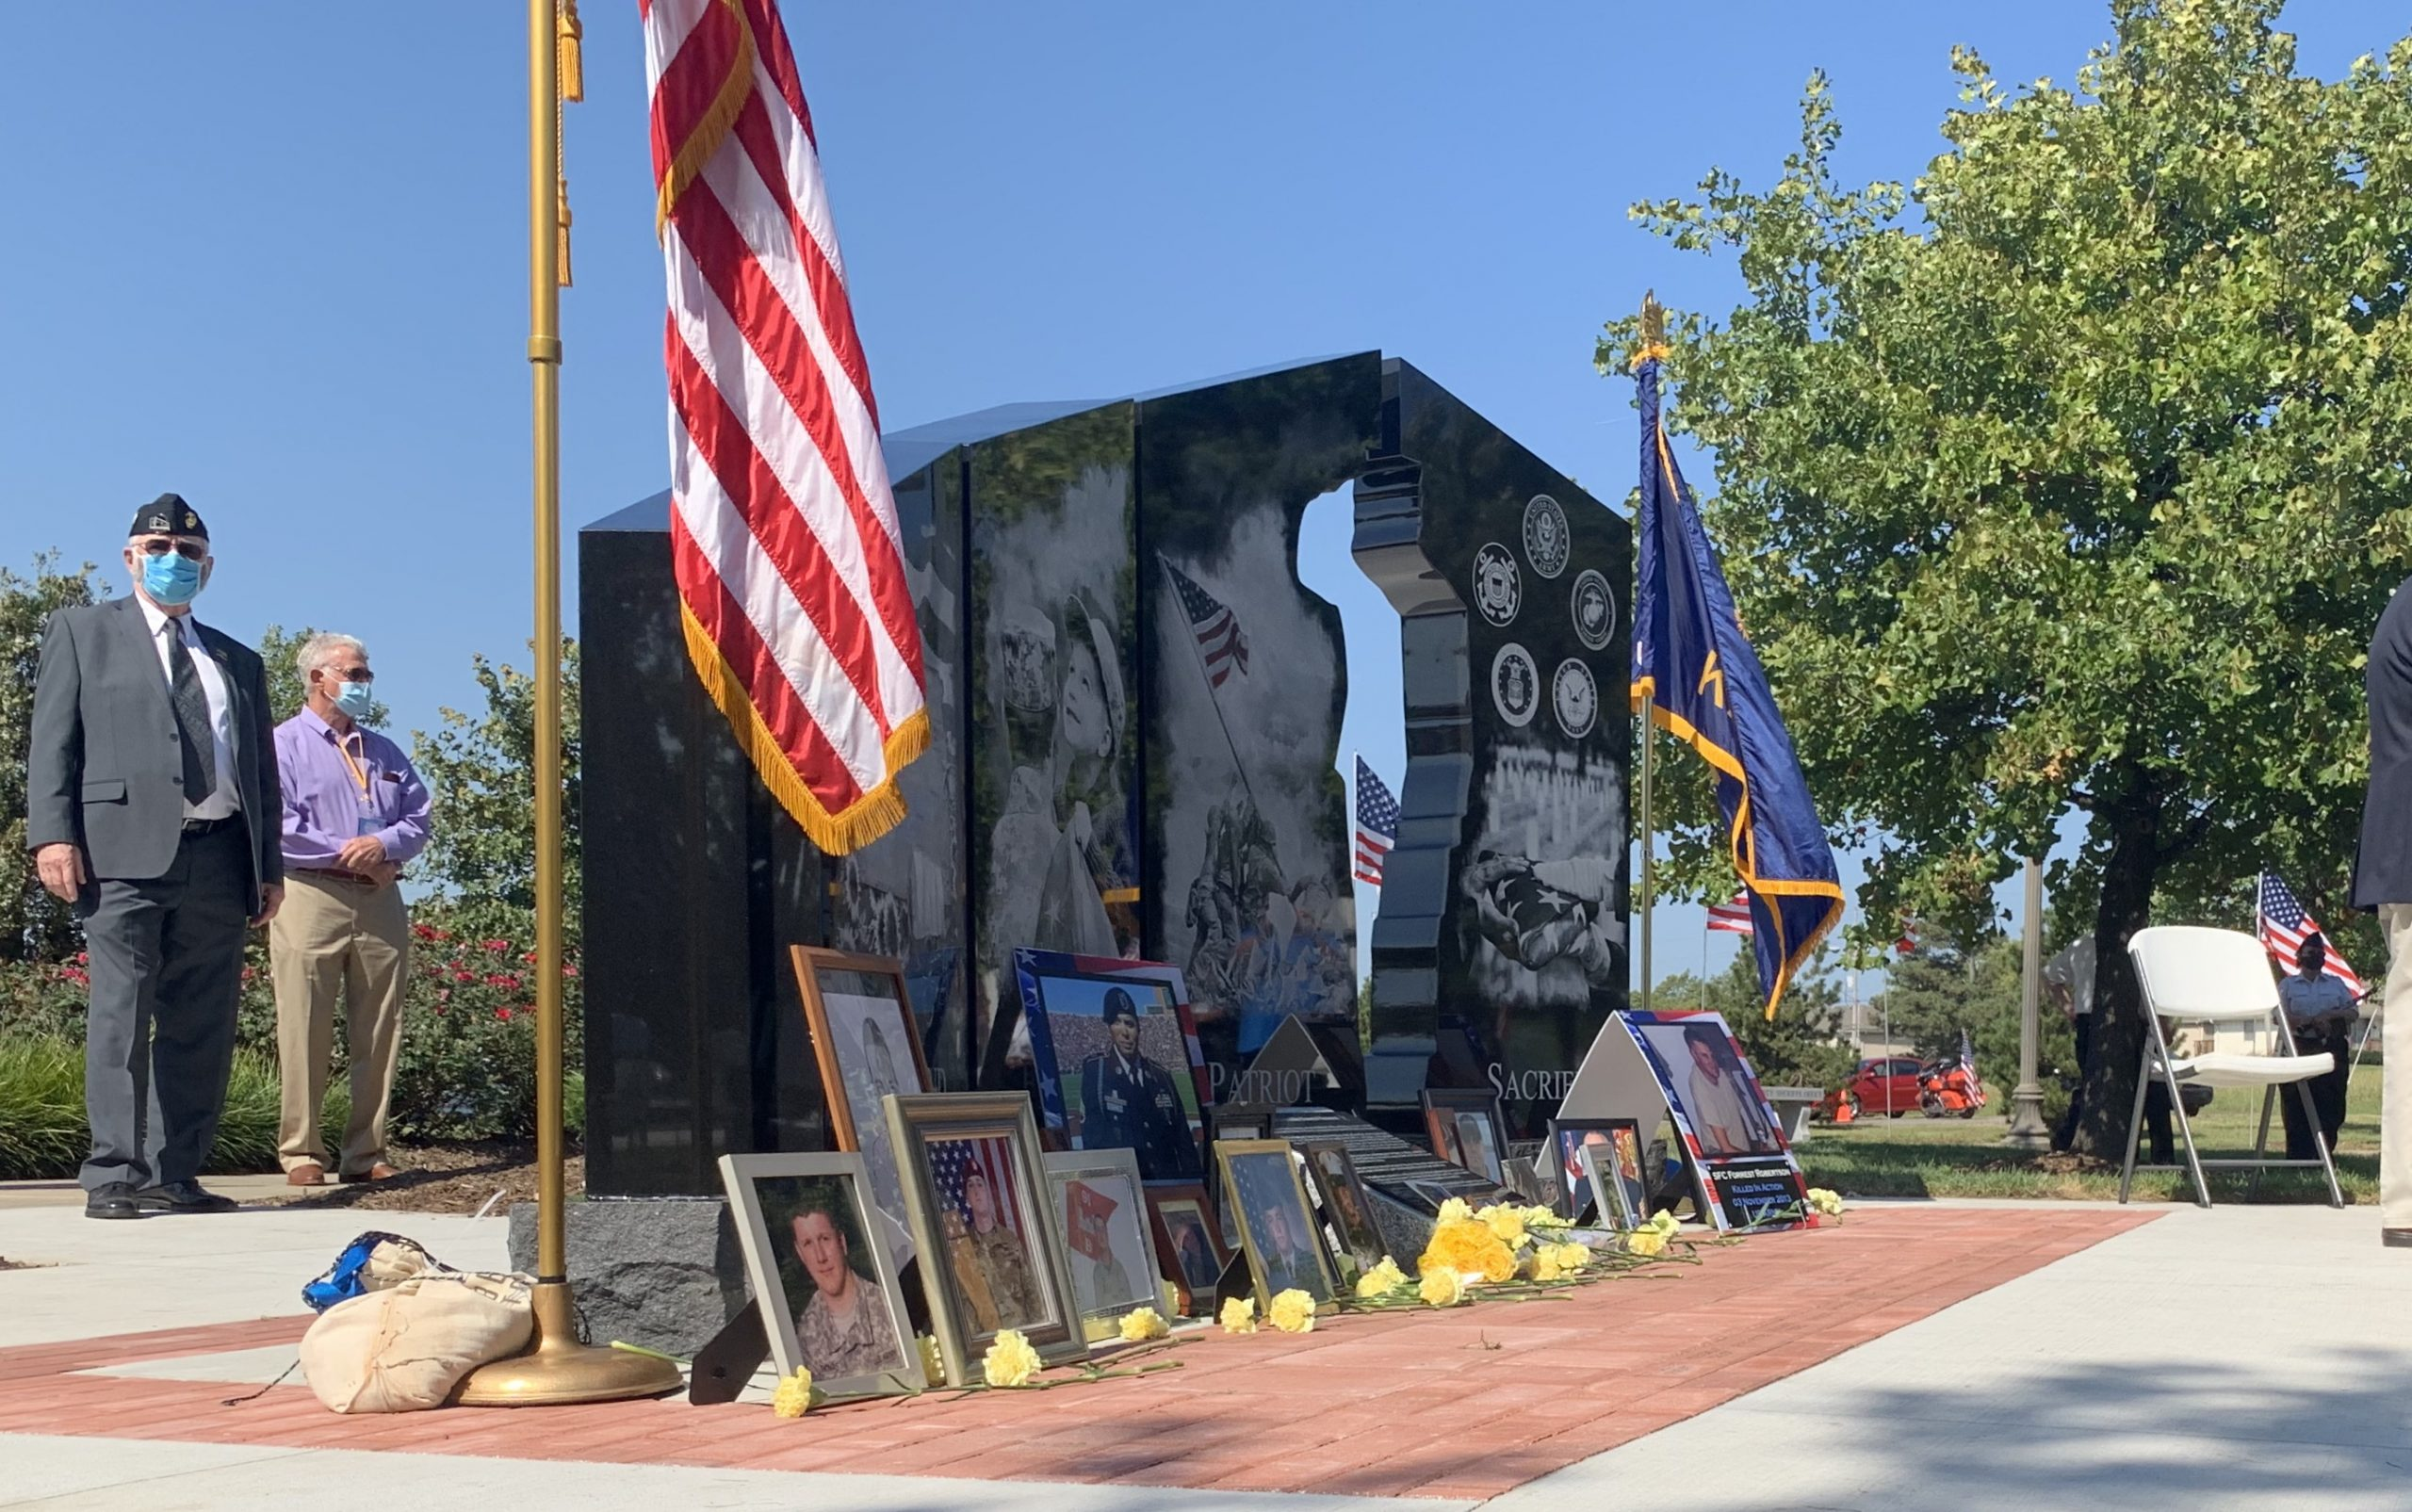 Olathe monument recognizes families of those who lost lives in military service